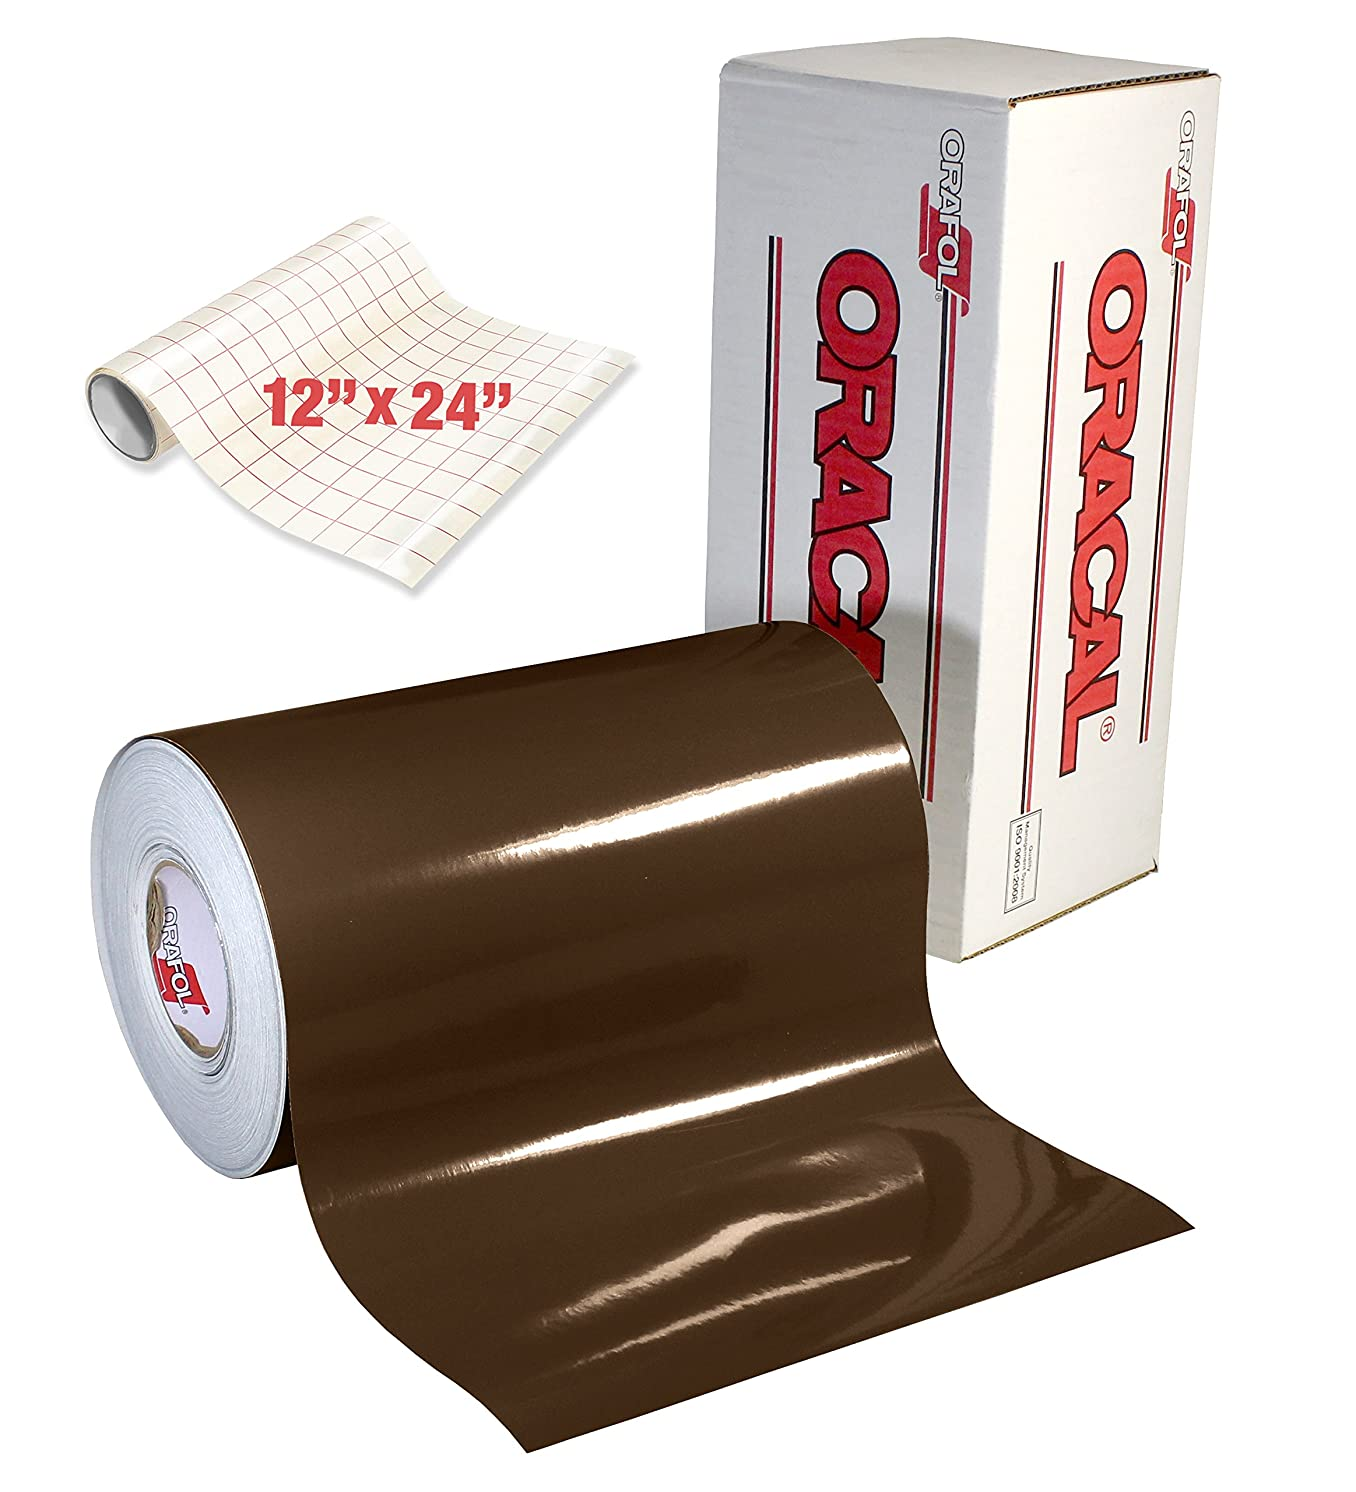 ORACAL 651 Gloss Brown Adhesive Craft Vinyl for Cameo, Cricut & Silhouette Including Free Roll of Clear Transfer Paper (30ft x 12